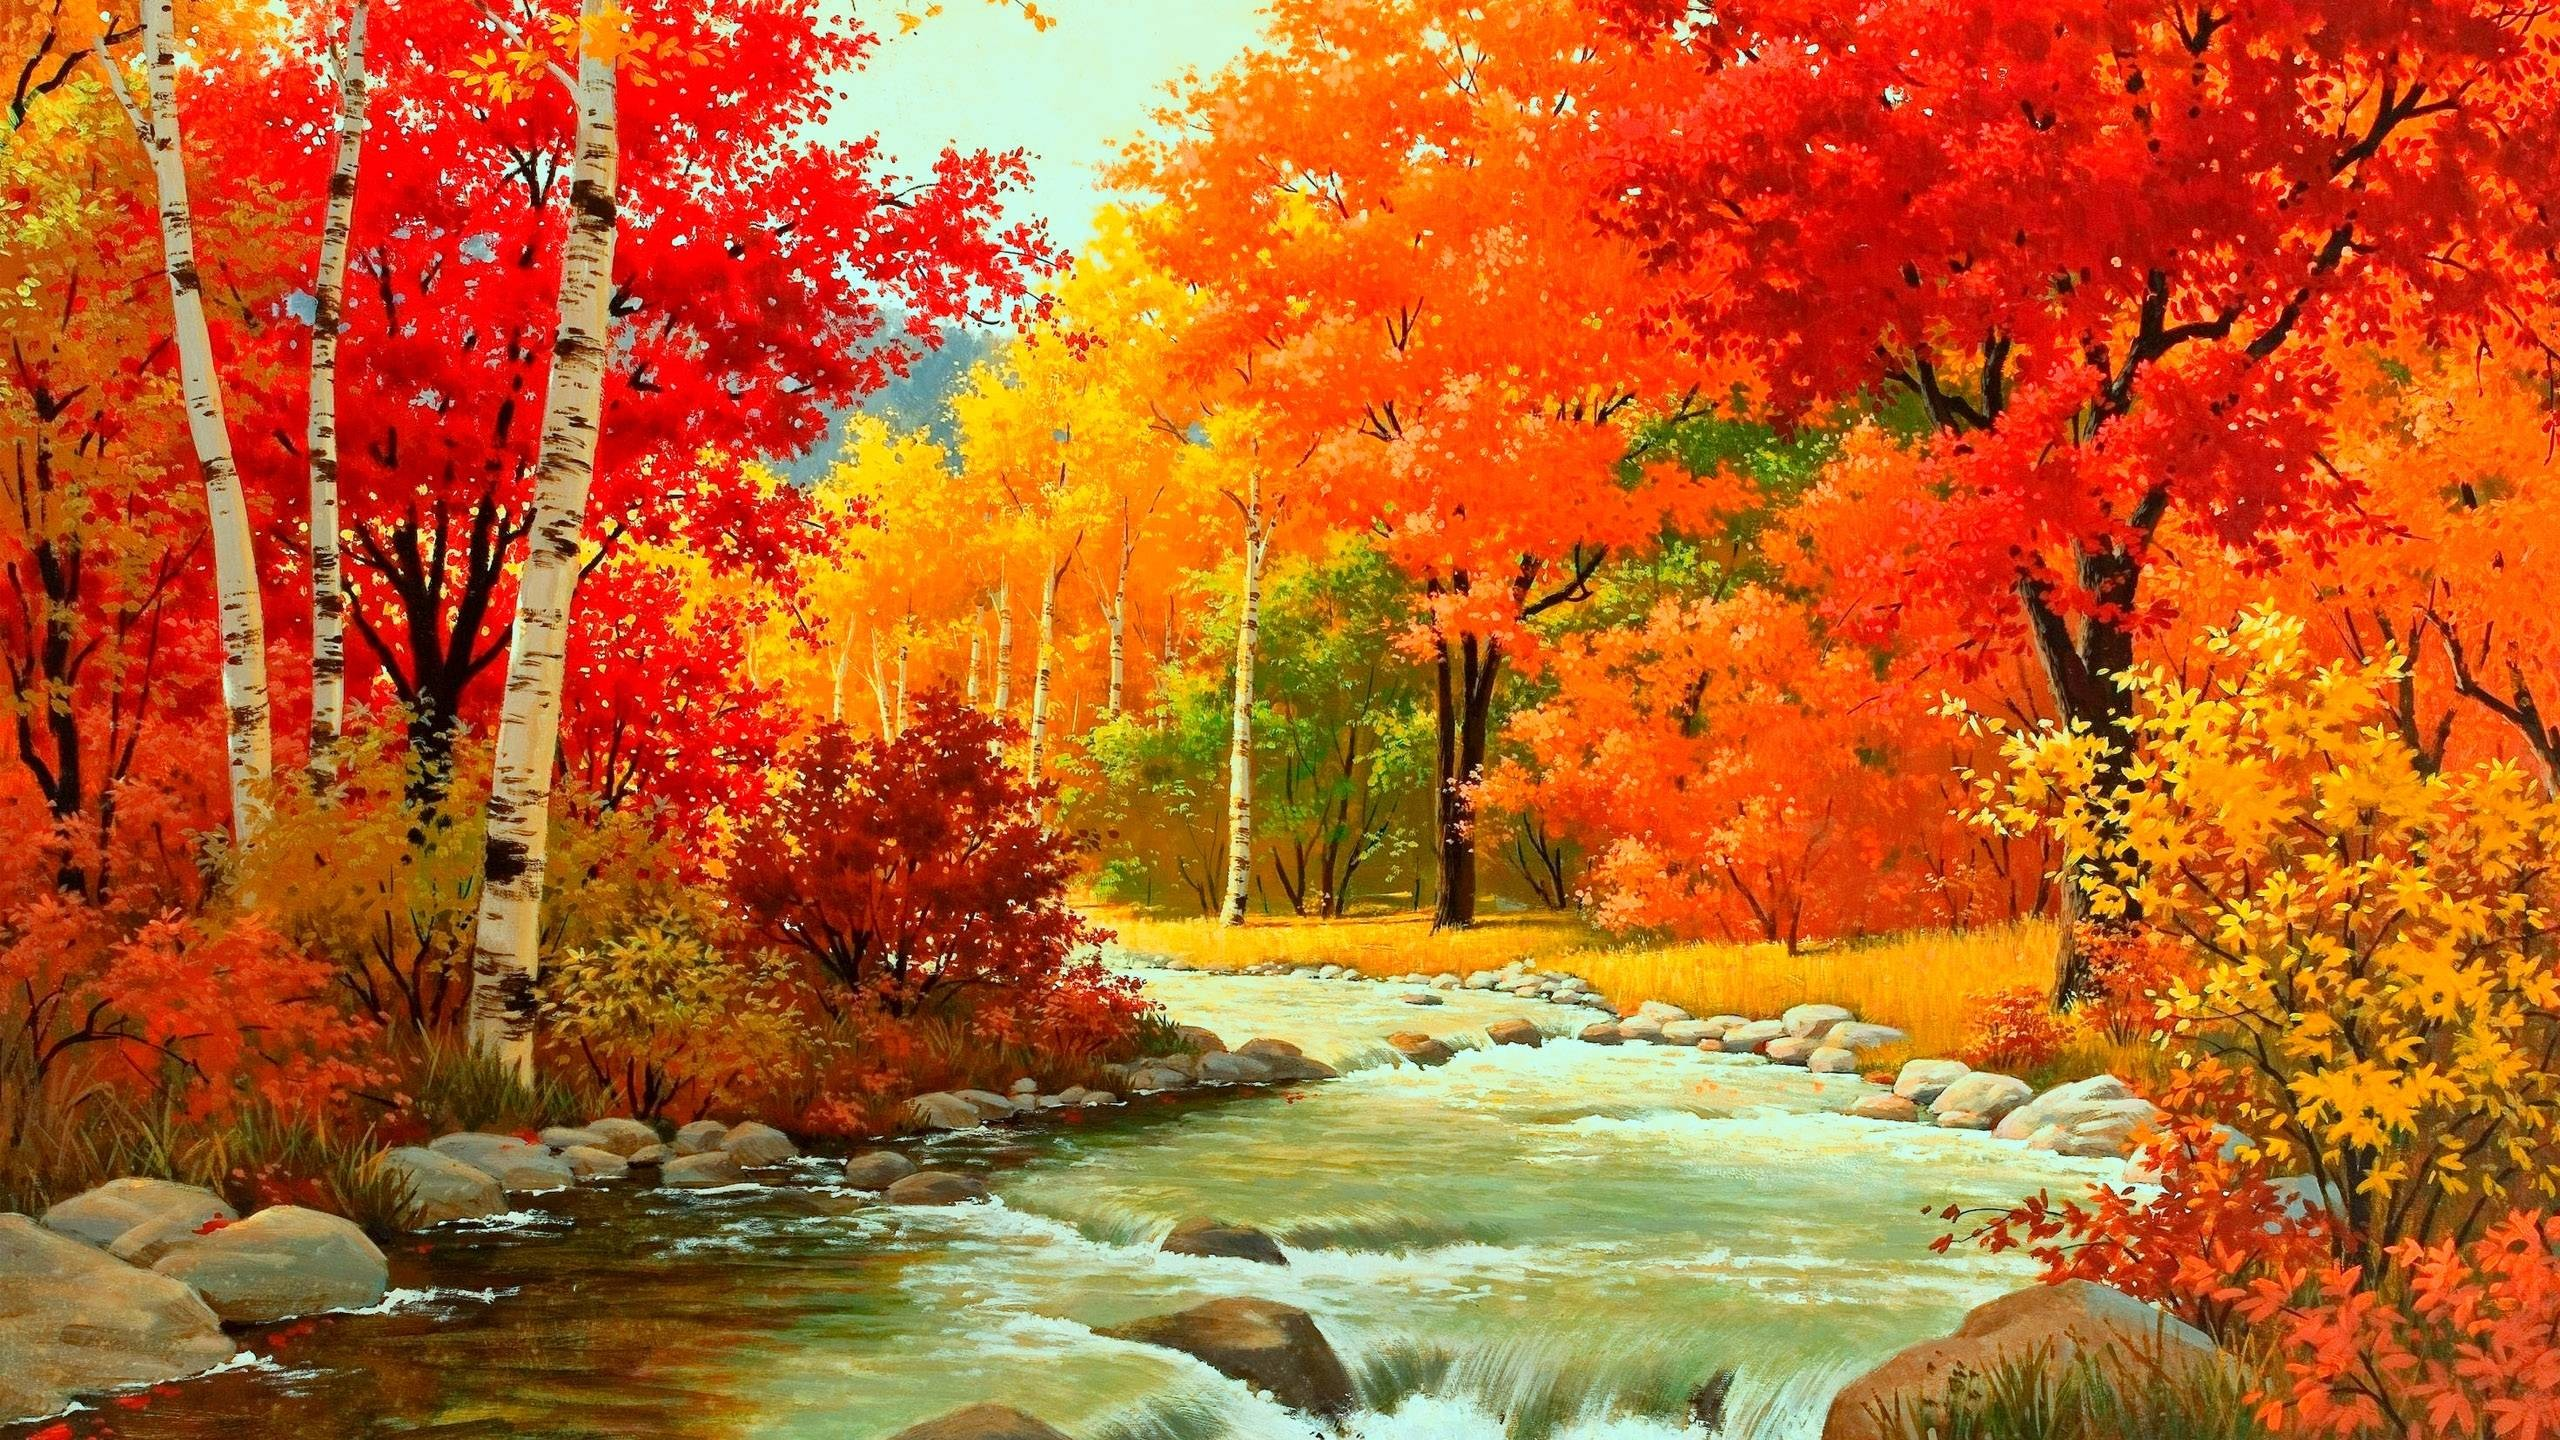 Wallpapers For > Abstract Autumn Wallpaper Hd